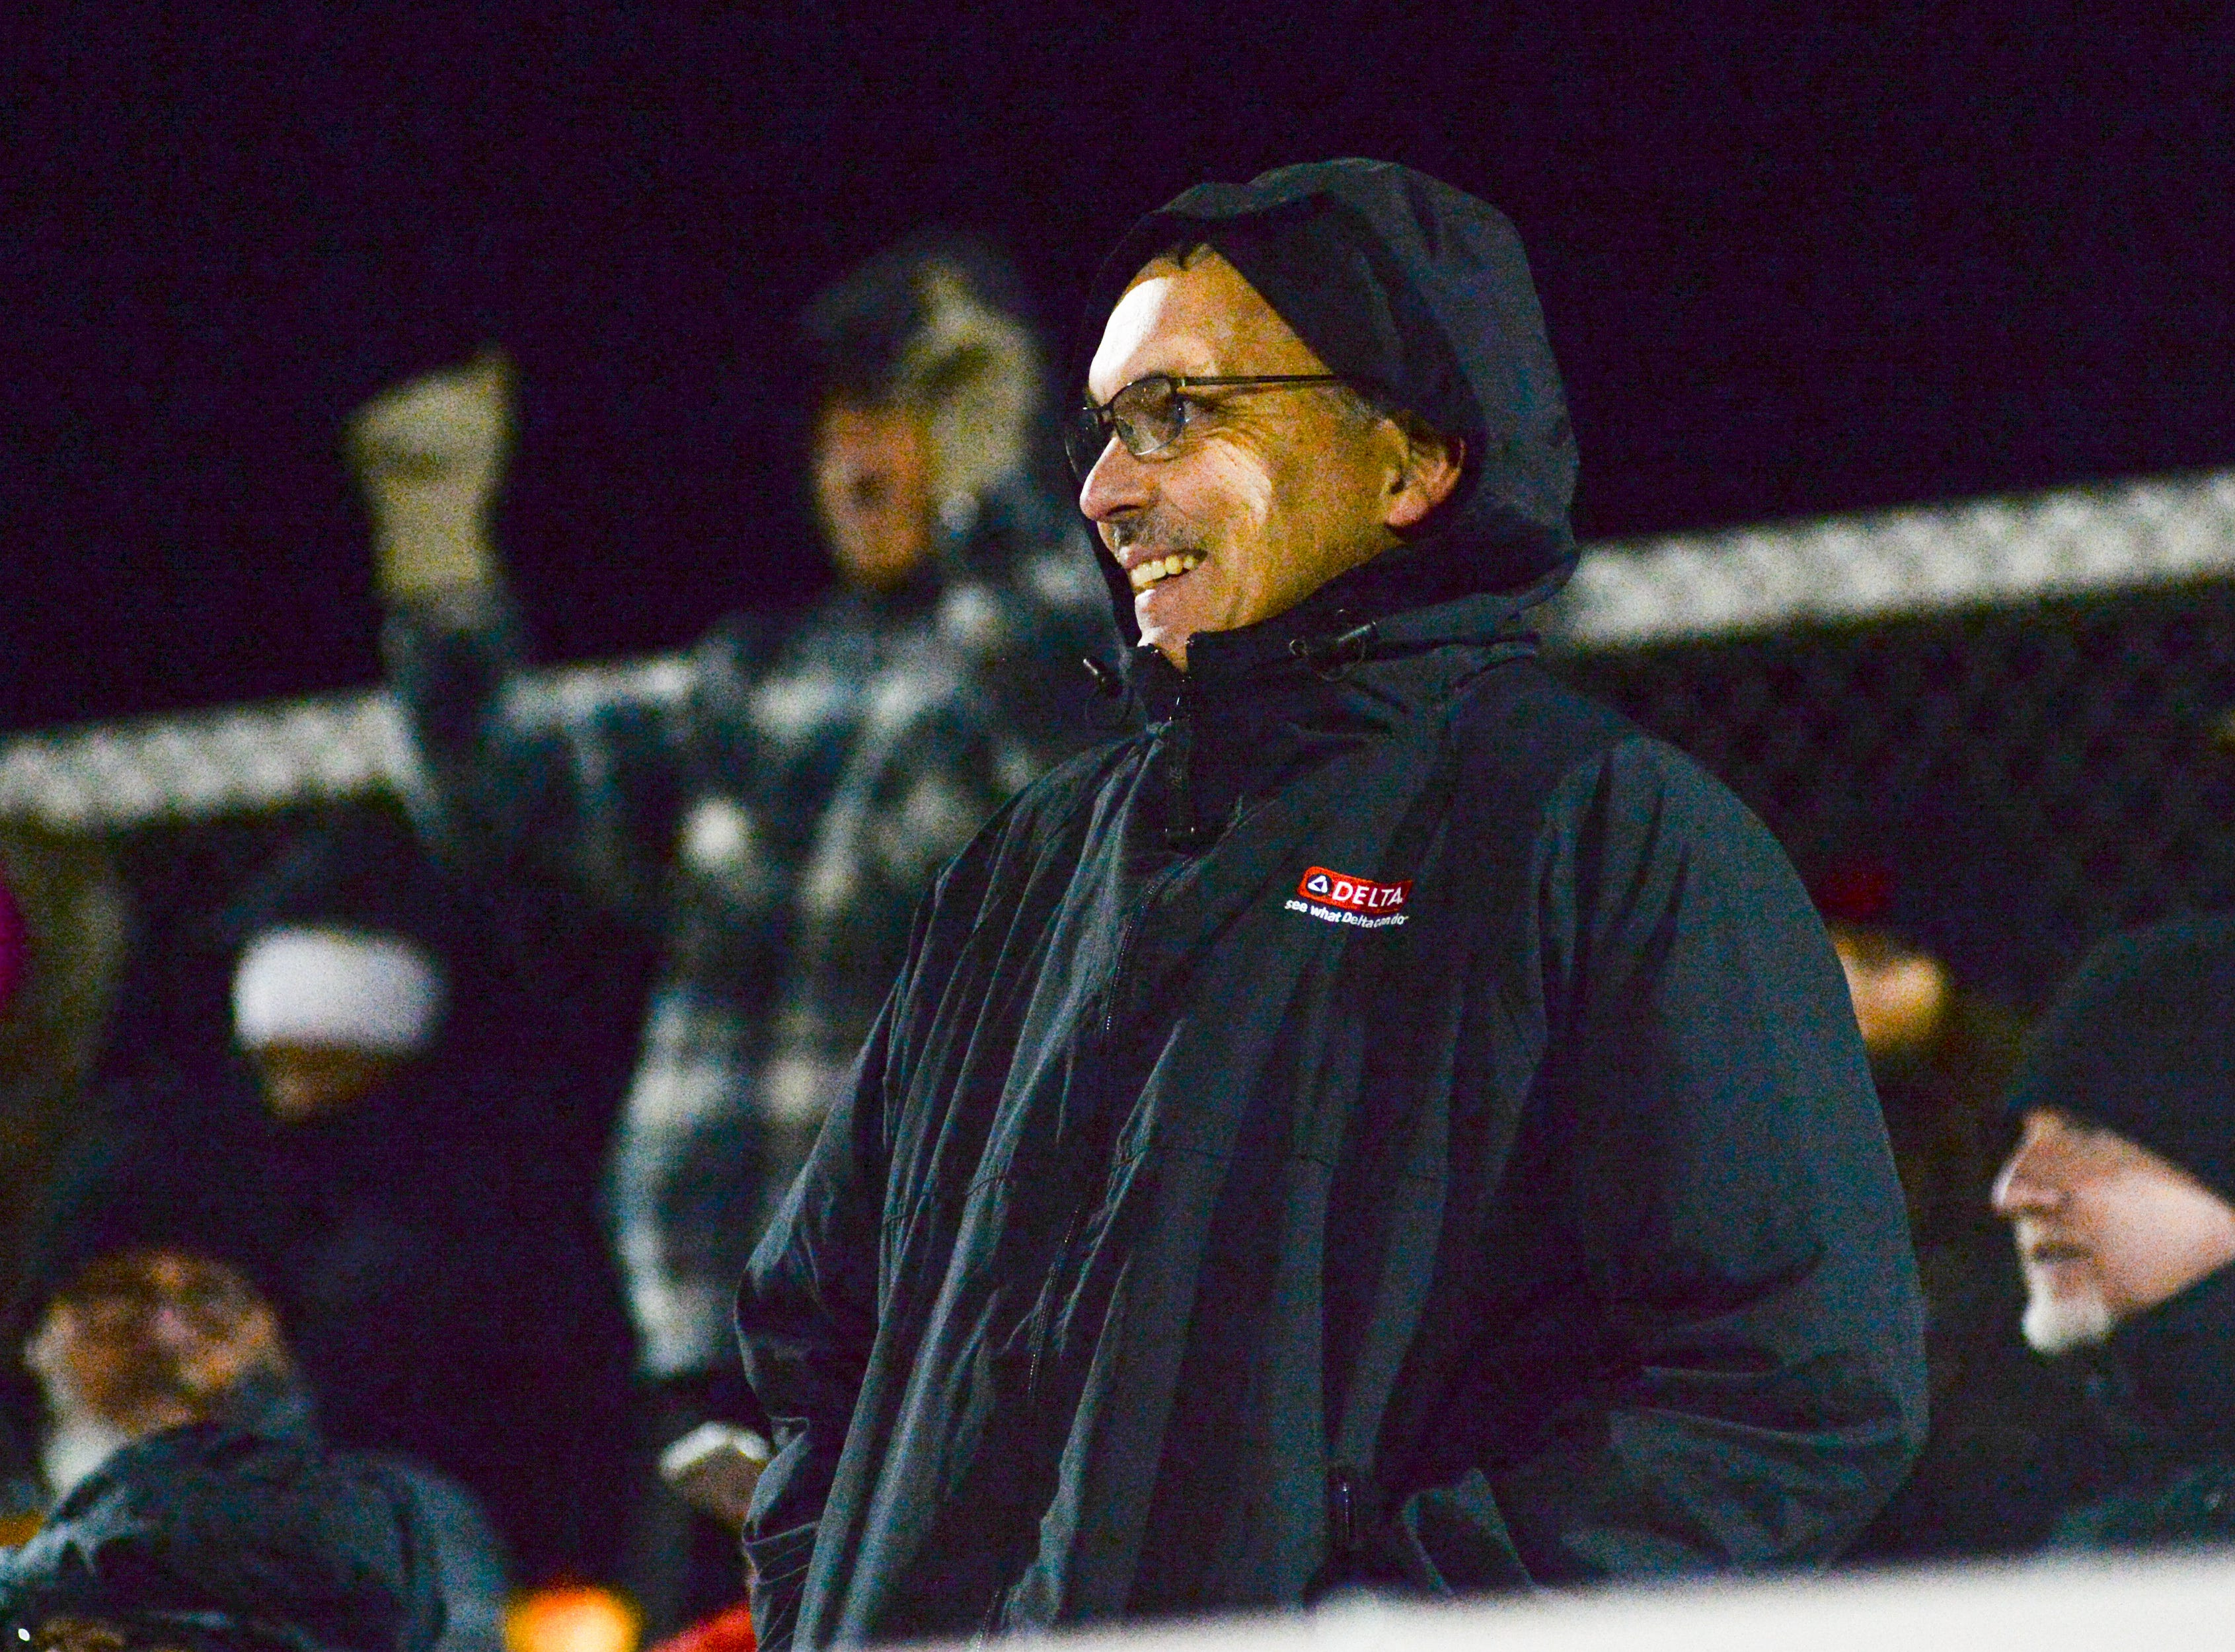 South Side High School fans cheer for their team at Springfield High School on Friday, Nov. 9.